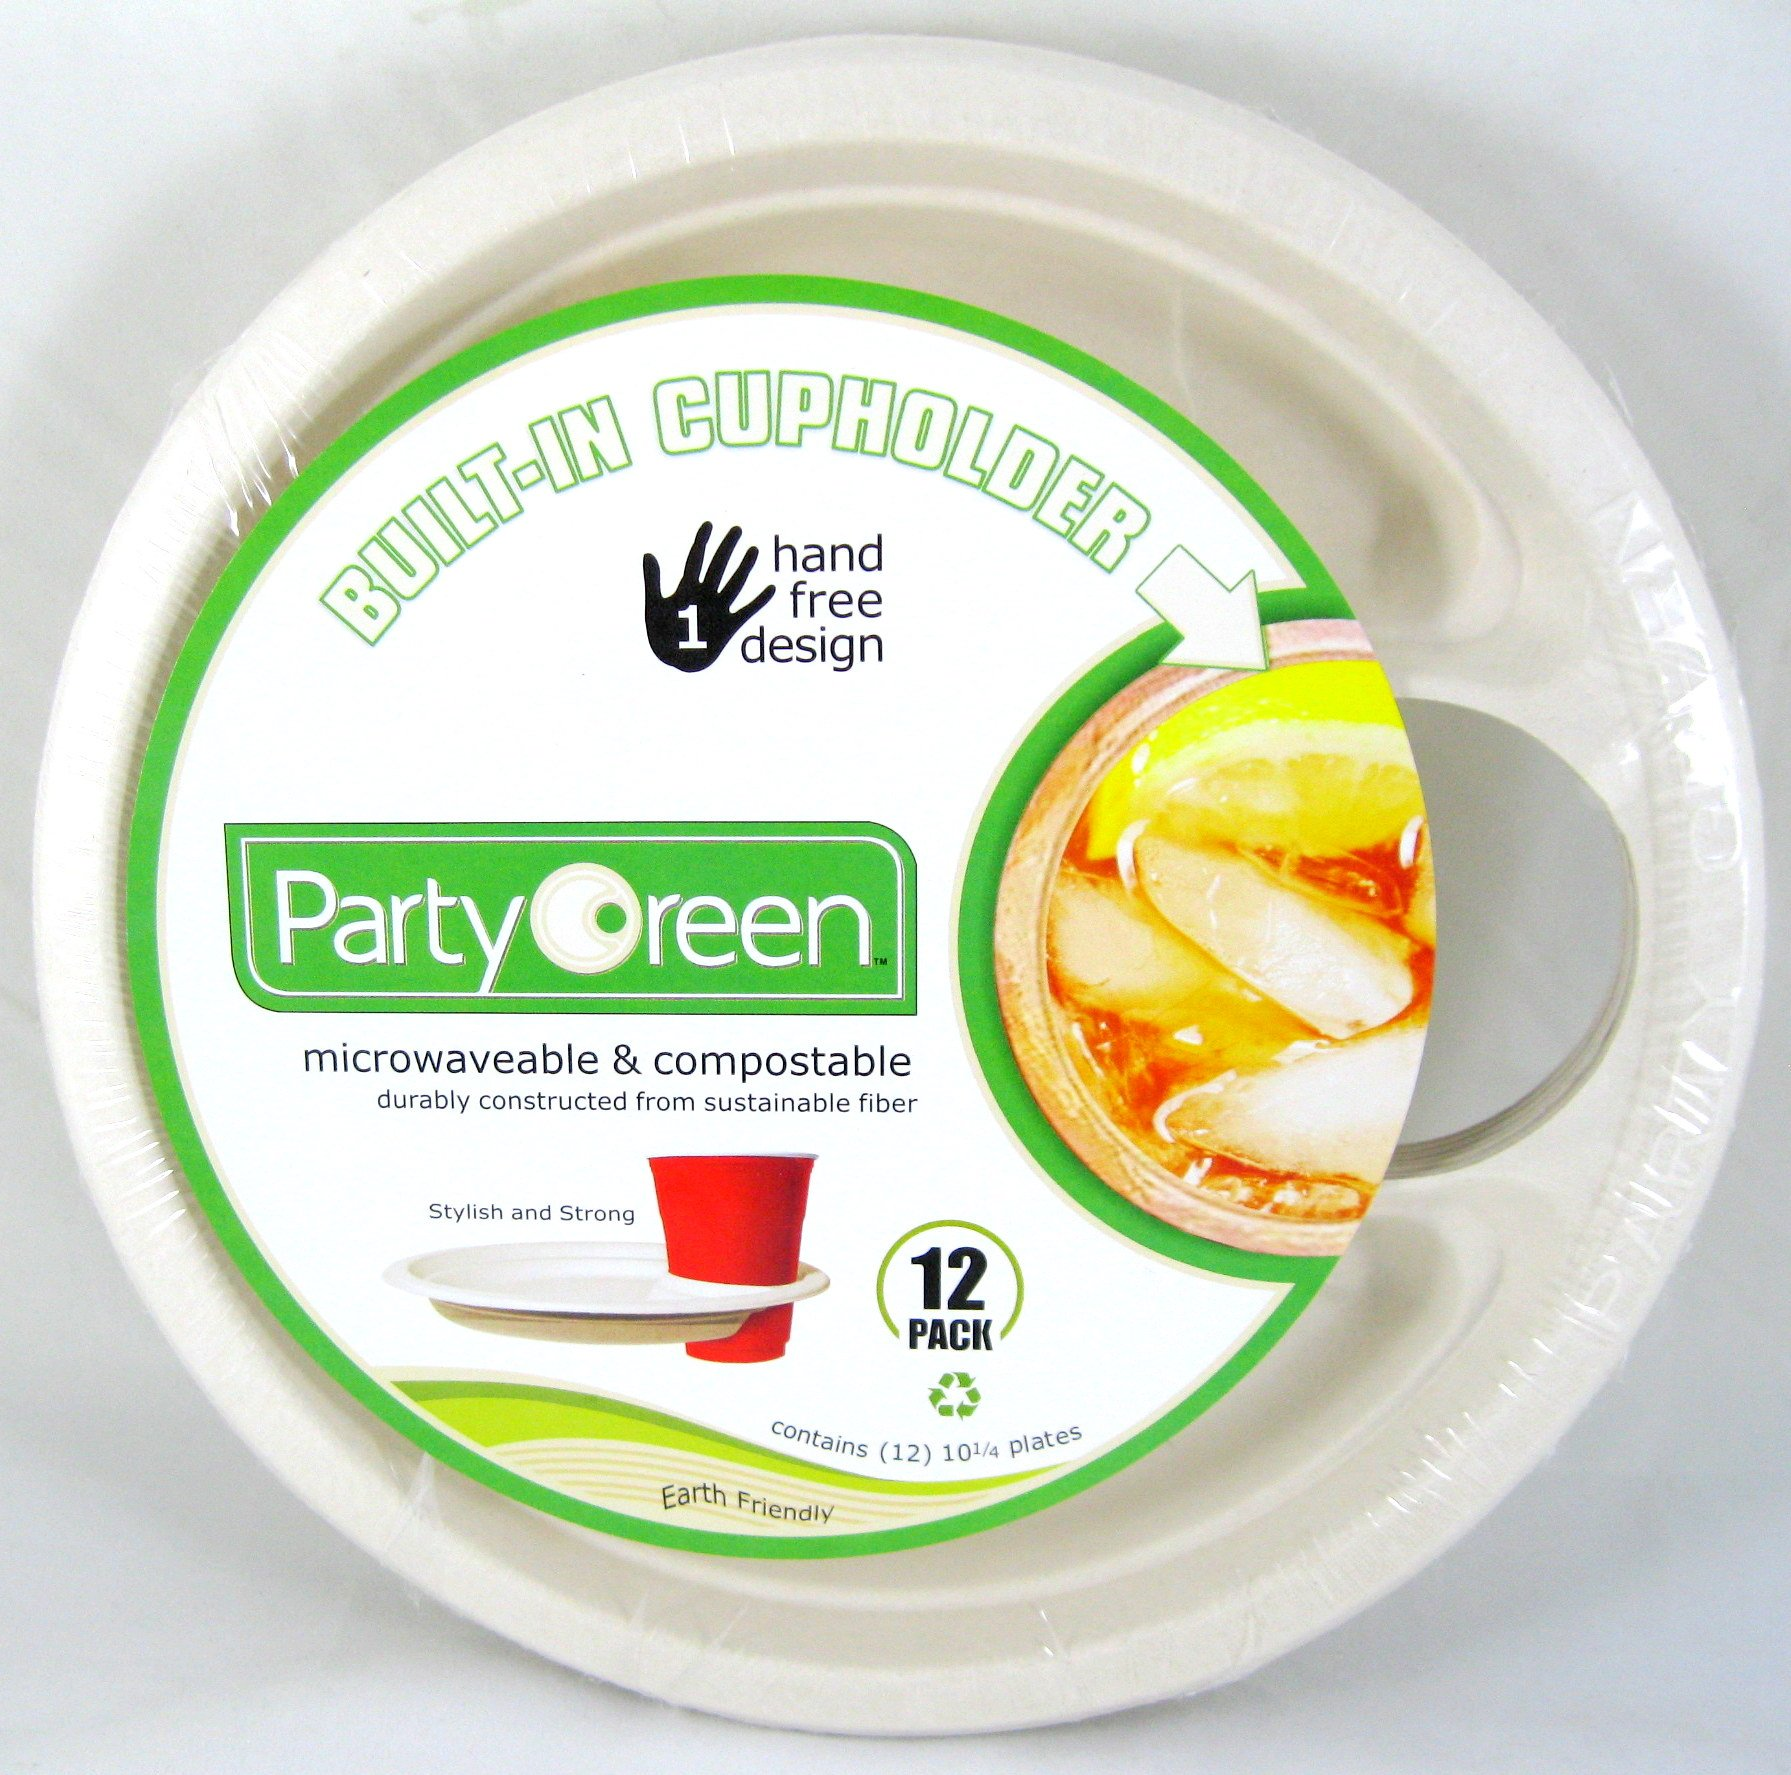 3 Pk Party Green Plates with Built-in Cup Holder - 12 Pack (  sc 1 st  Amazon.com & Amazon.com: Kingsford Cup Holder Plate 8\u201d: Health \u0026 Personal Care